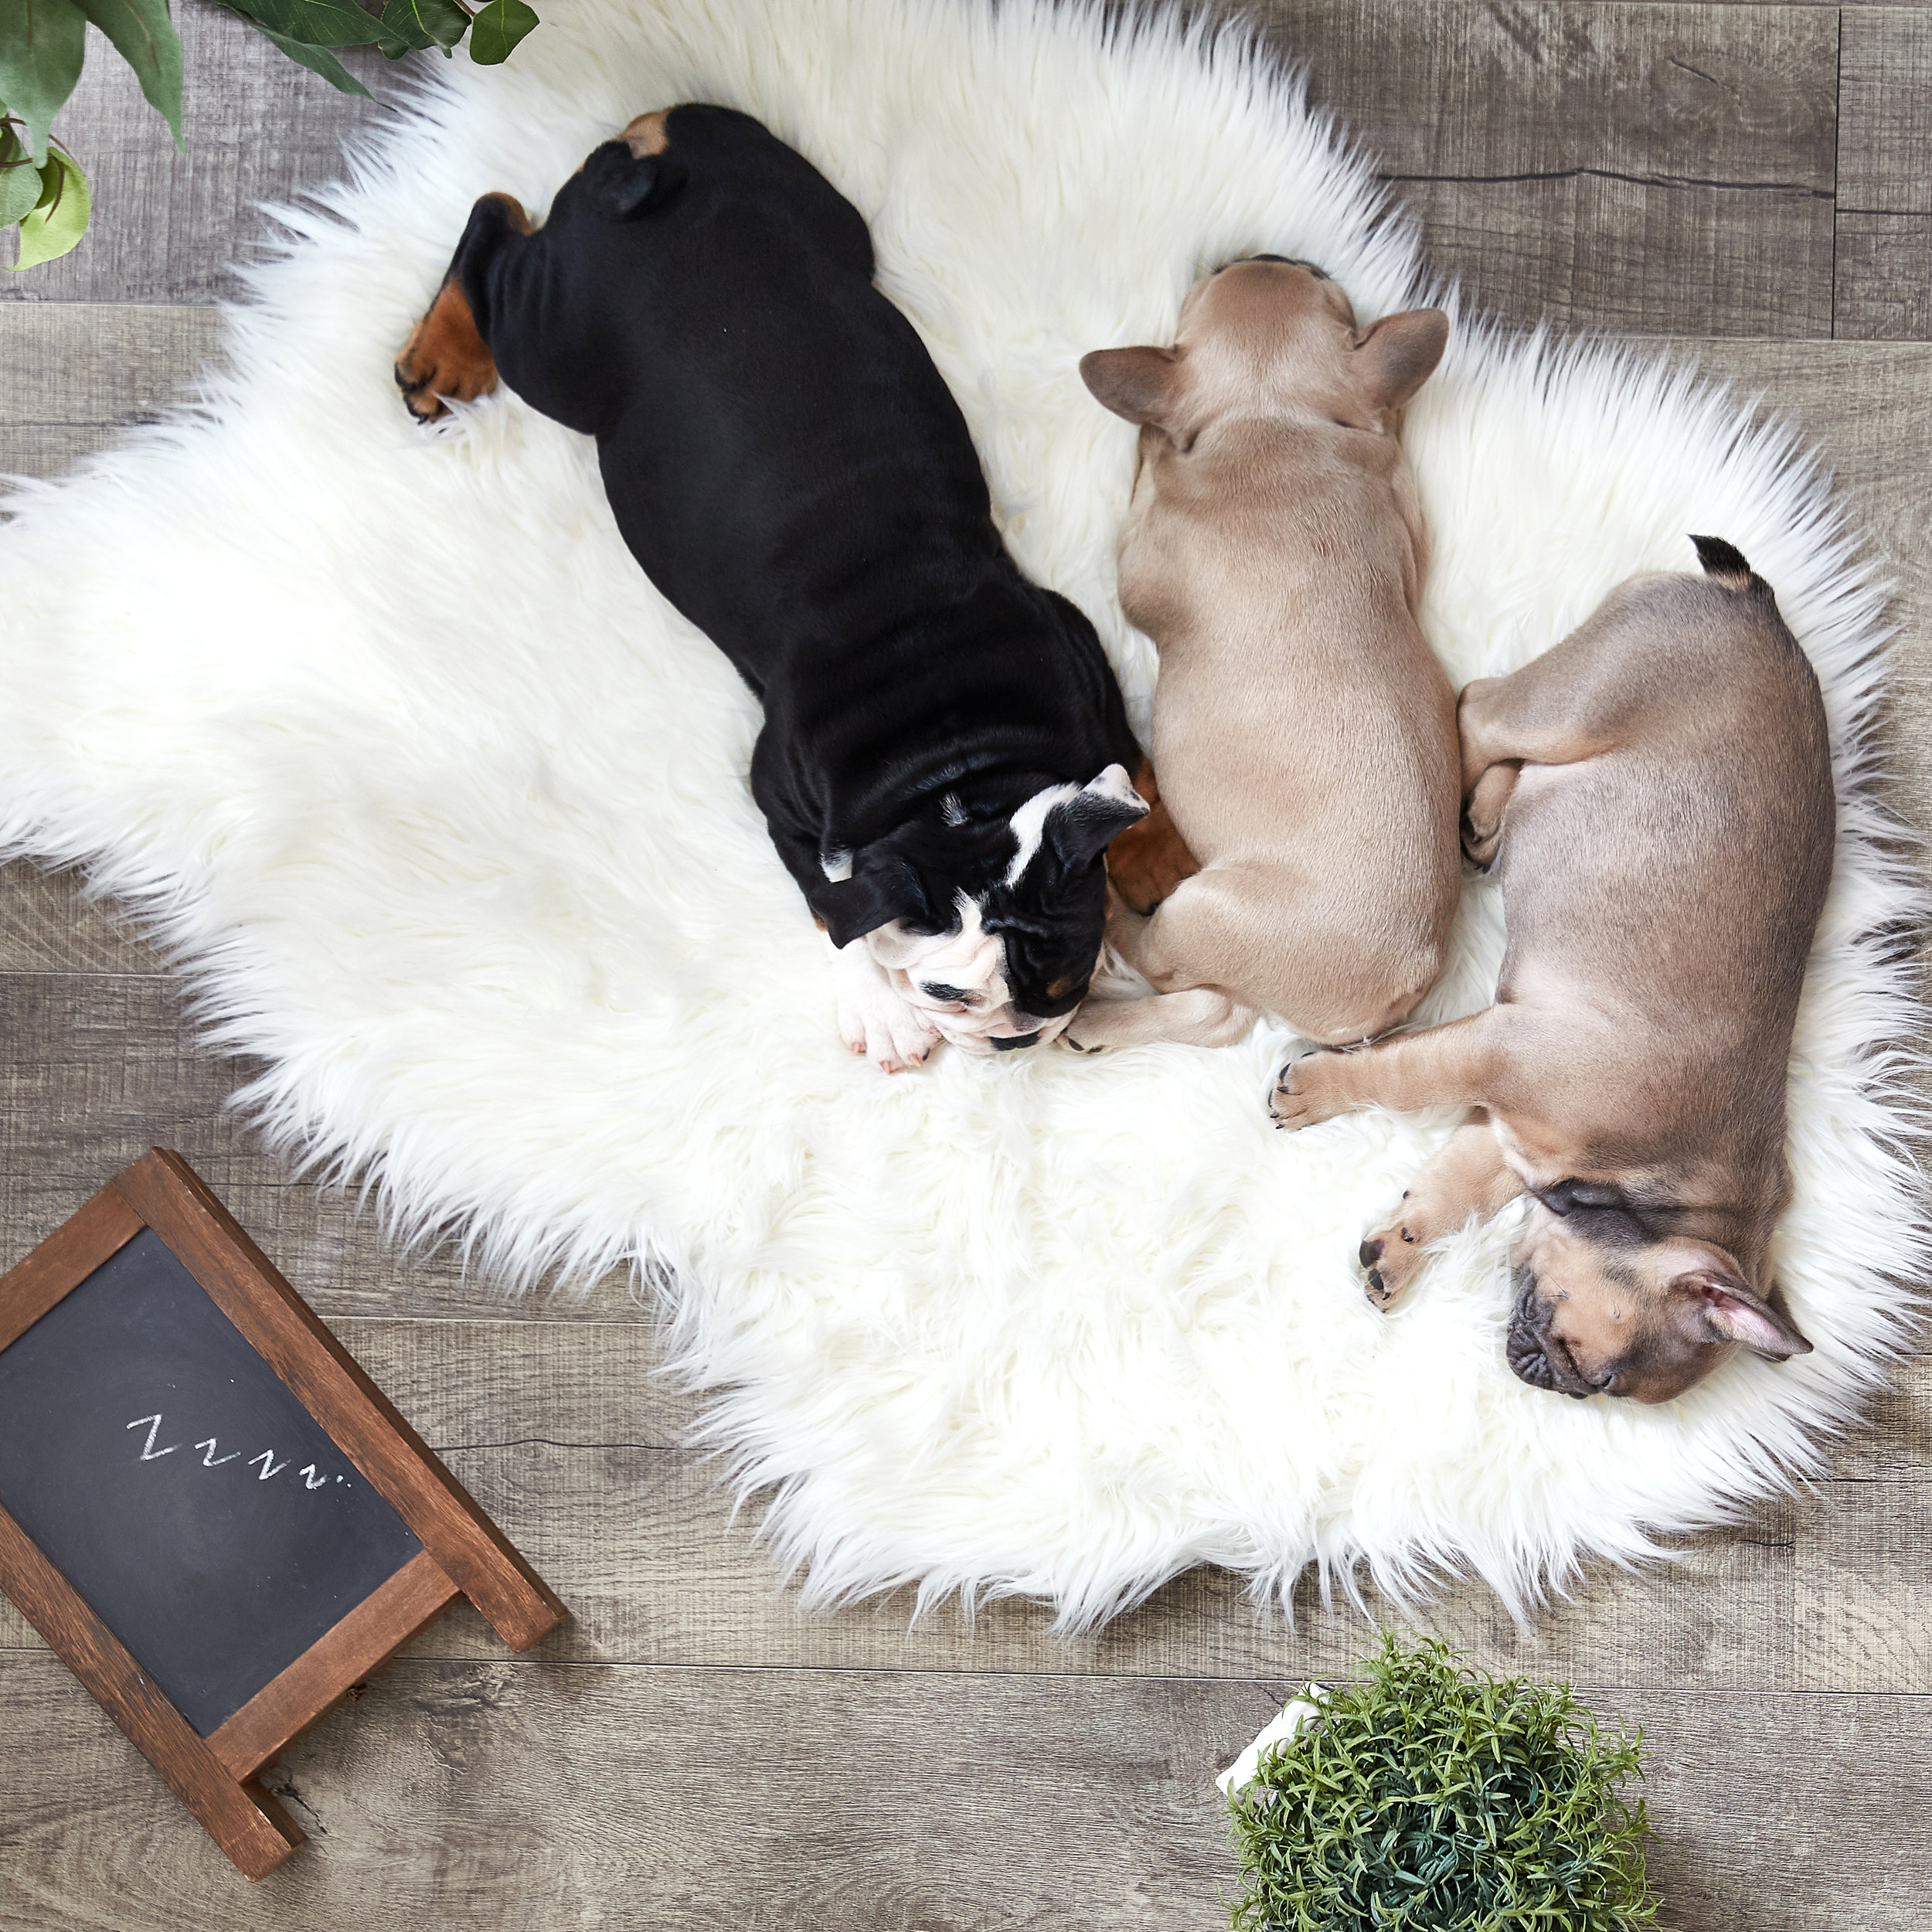 Lifestyle image of French Bulldogs napping on a Target rug. Taken for Chewy.com.by Javier Edwards